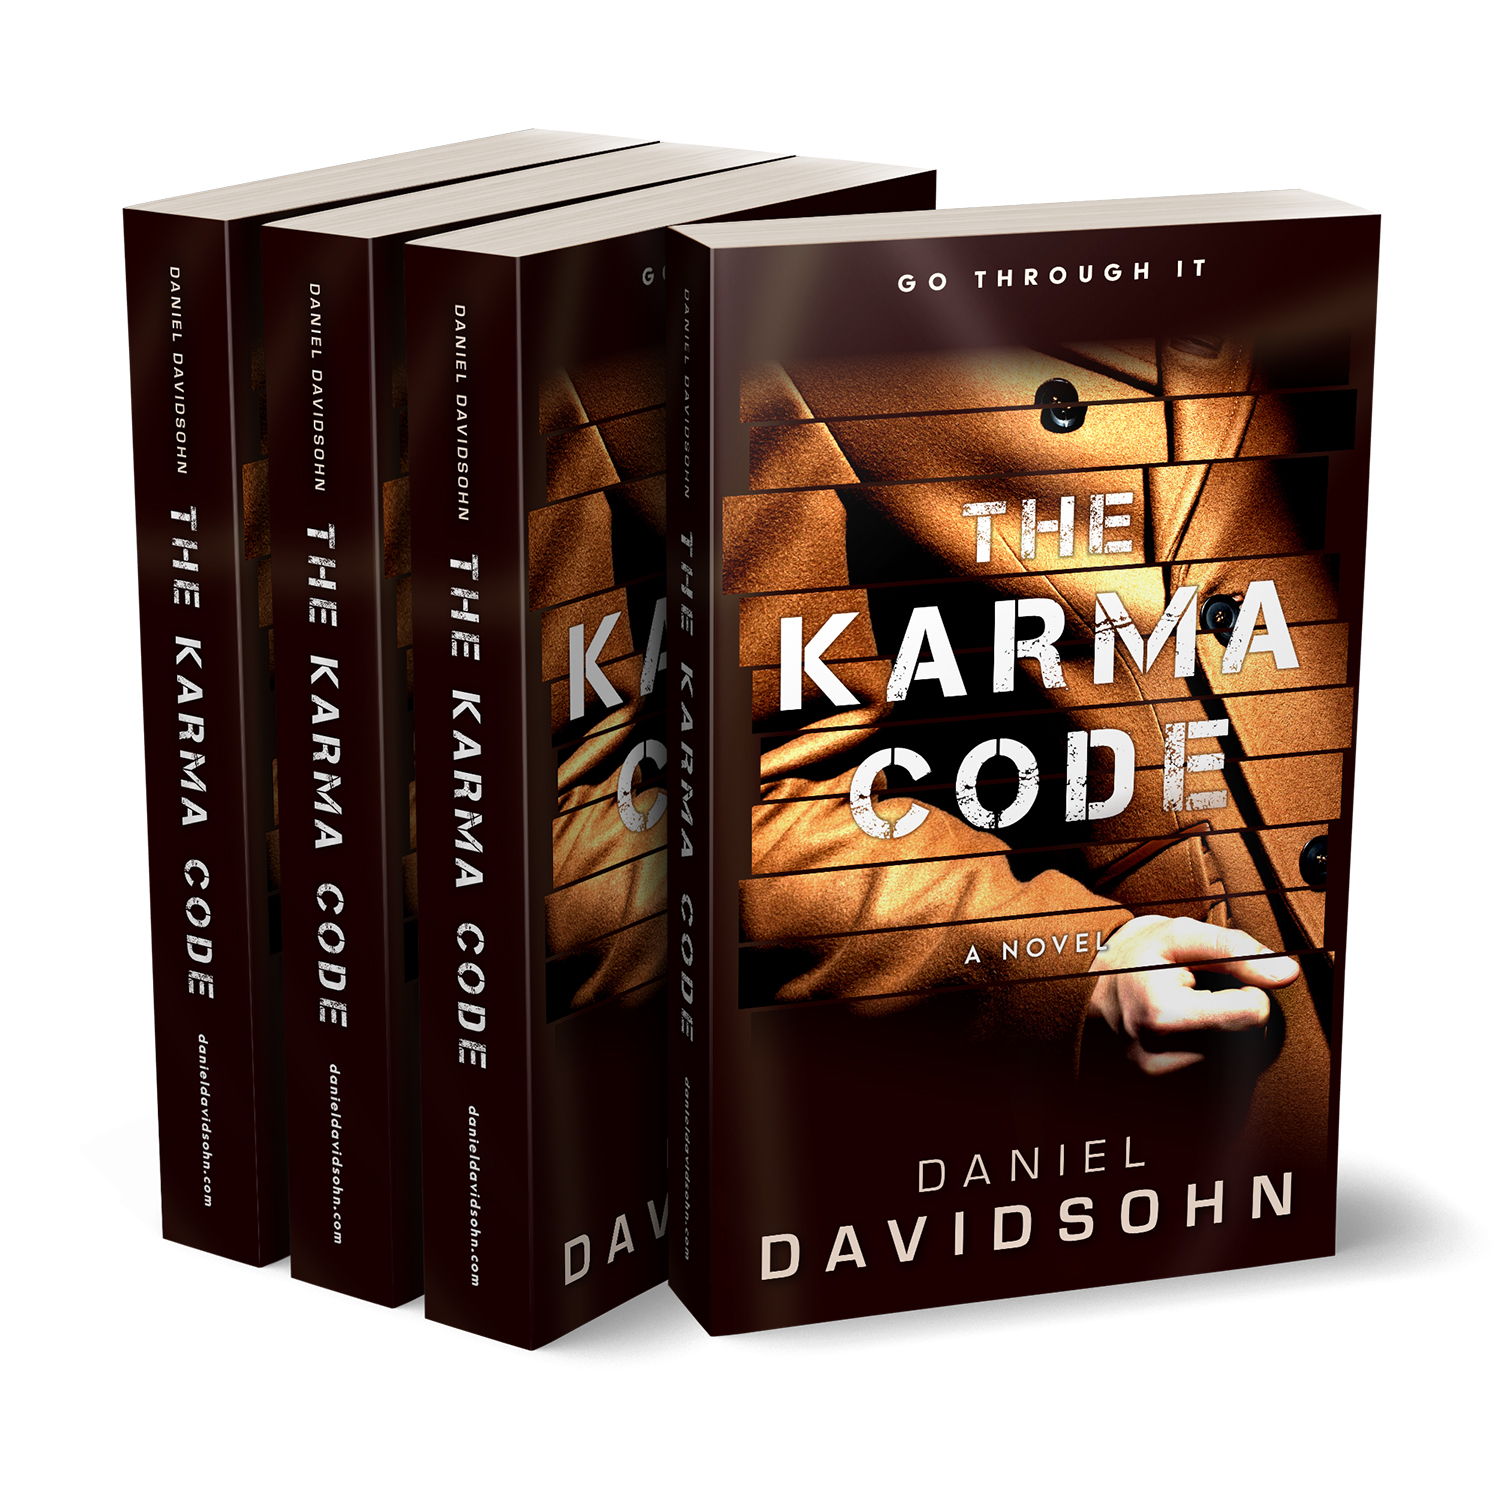 'The Karma Code' is techno thriller, by author Daniel Davidsohn. The book cover & interior were designed by Mark Thomas, of coverness.com. To find out more about my book design services, please visit www.coverness.com.